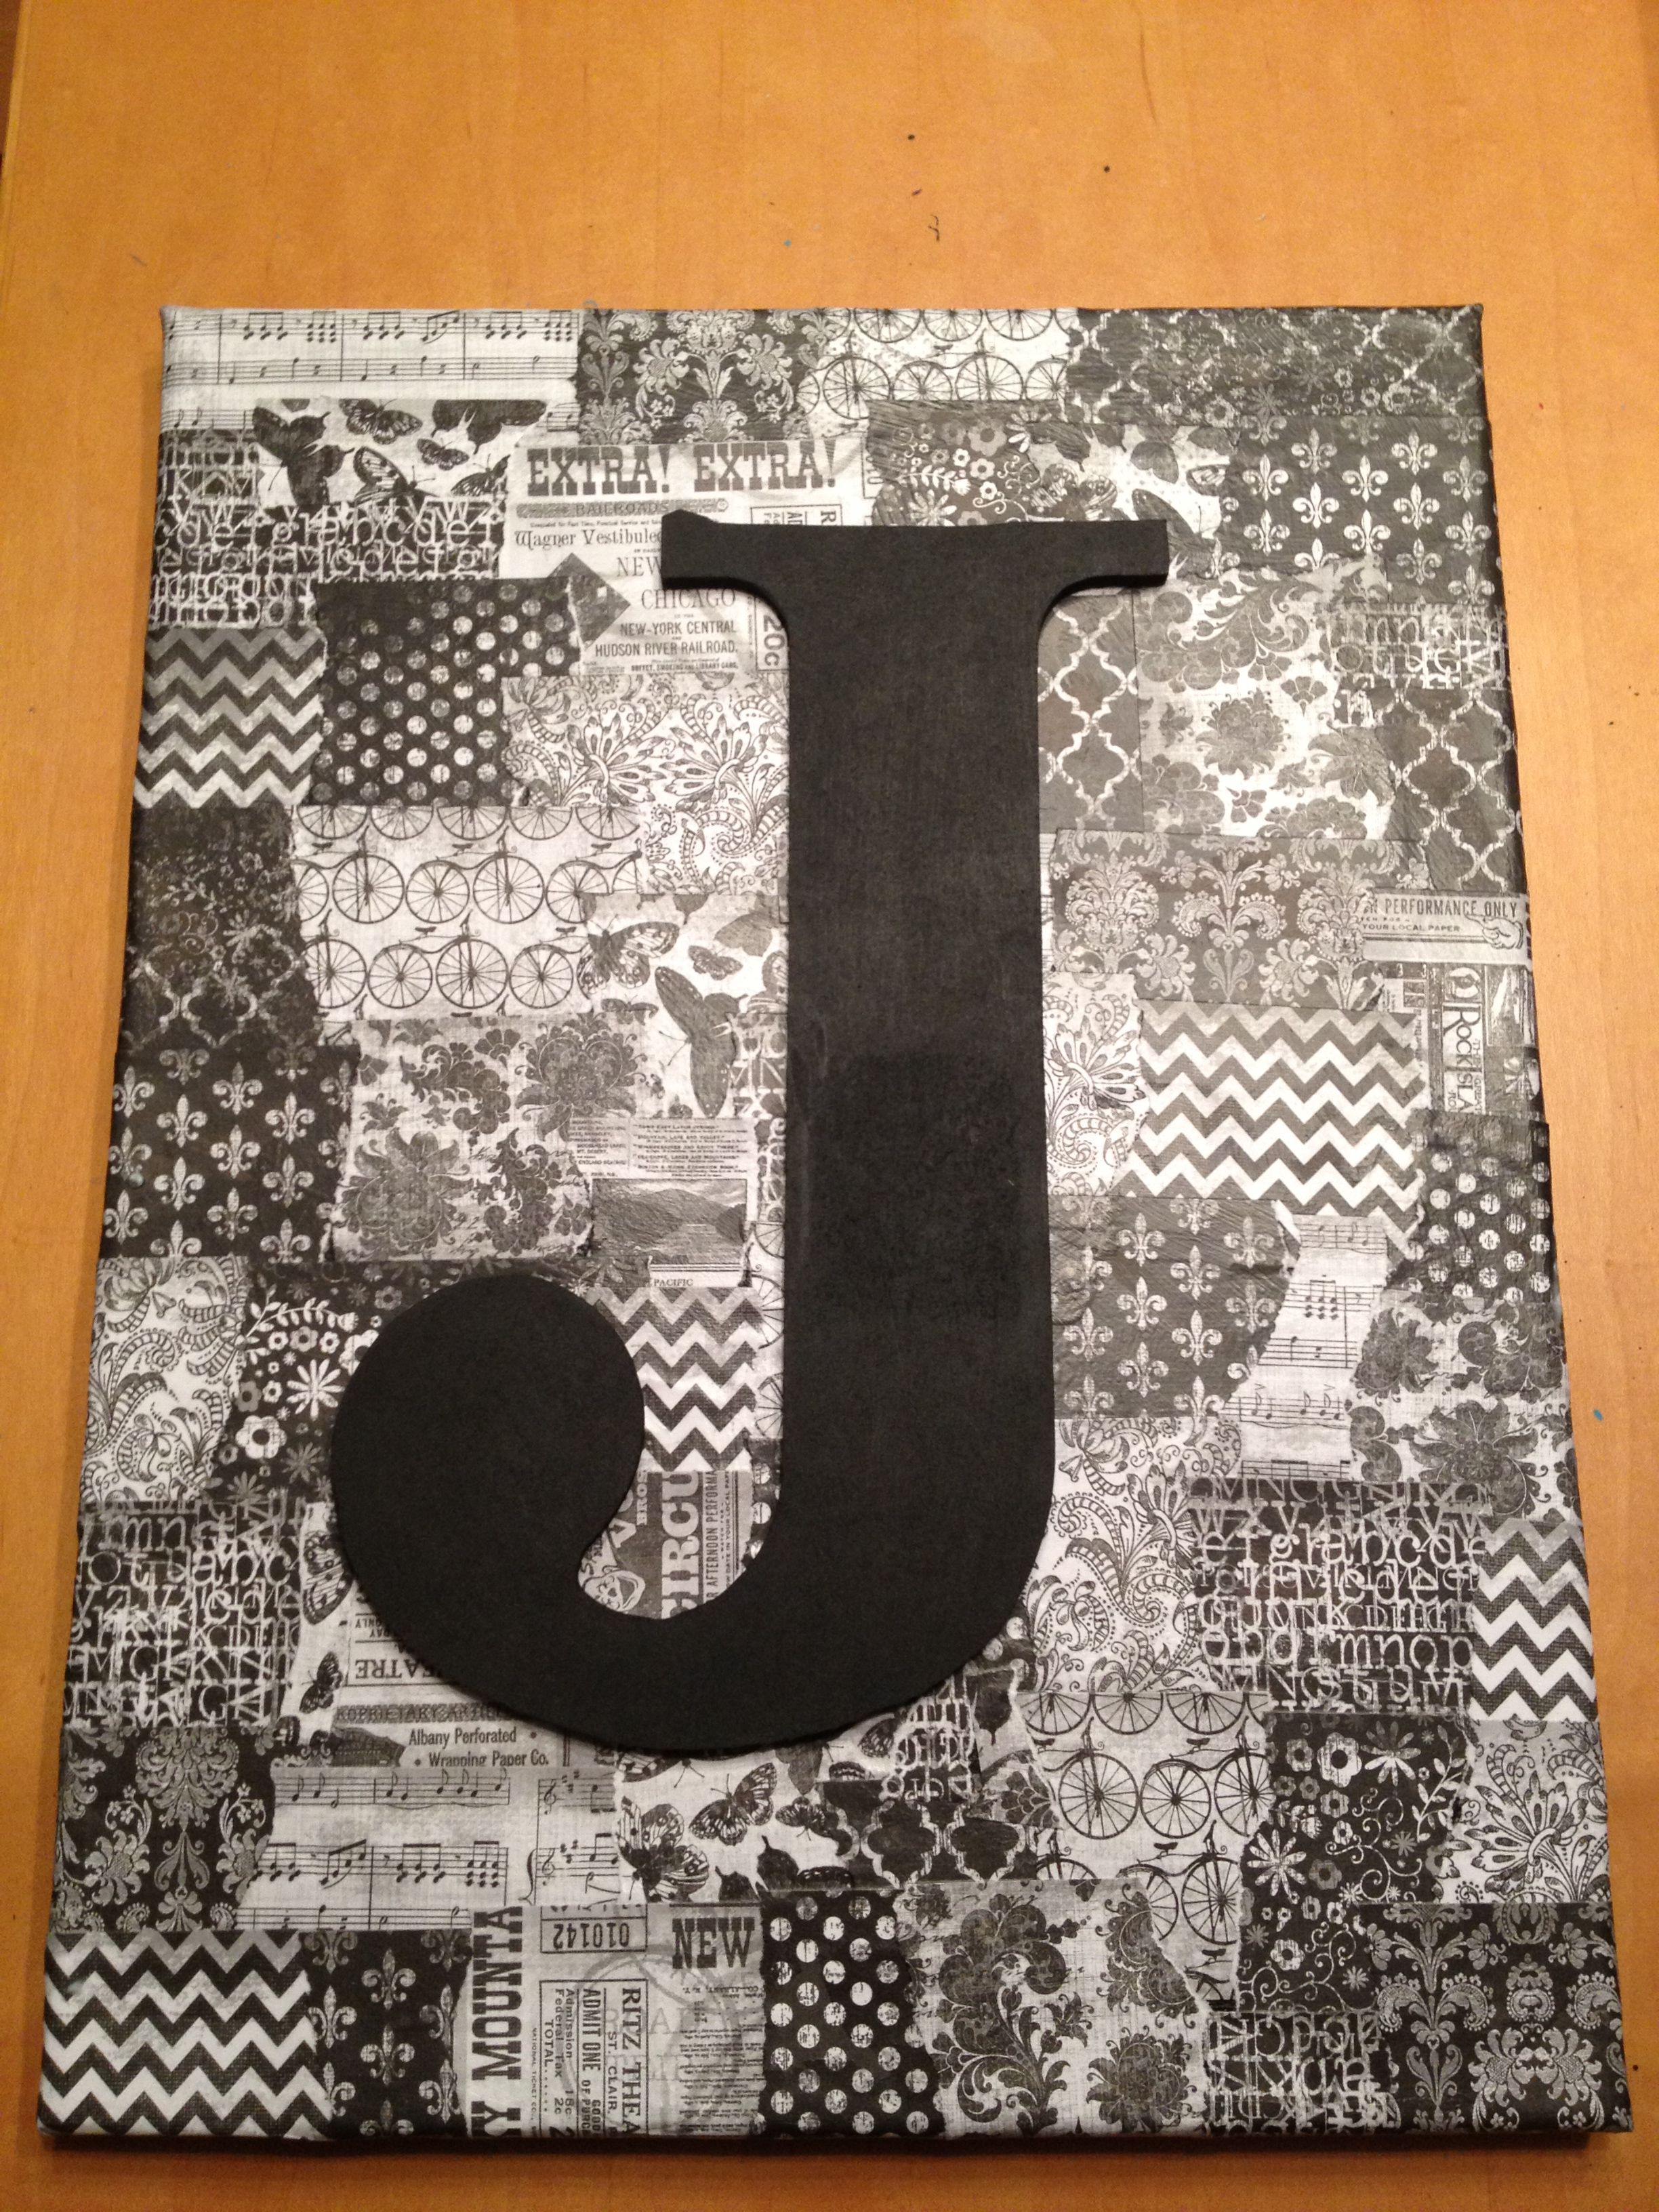 Mod podge canvas w/letter | art ideas | Pinterest | Cuadro